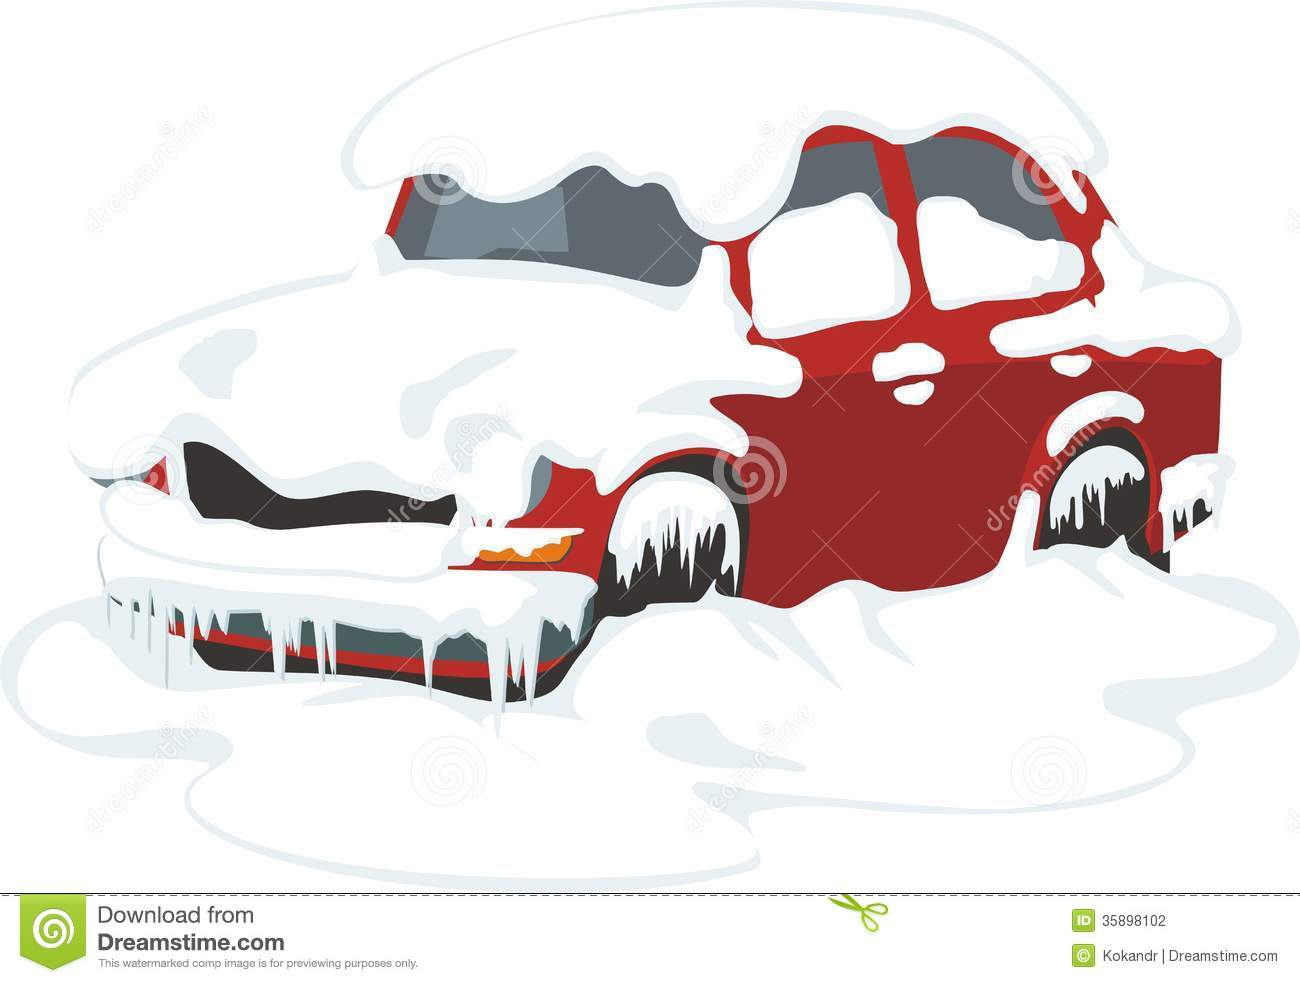 Car with snow car clipart clipart royalty free Car with snow car clipart - ClipartFest clipart royalty free